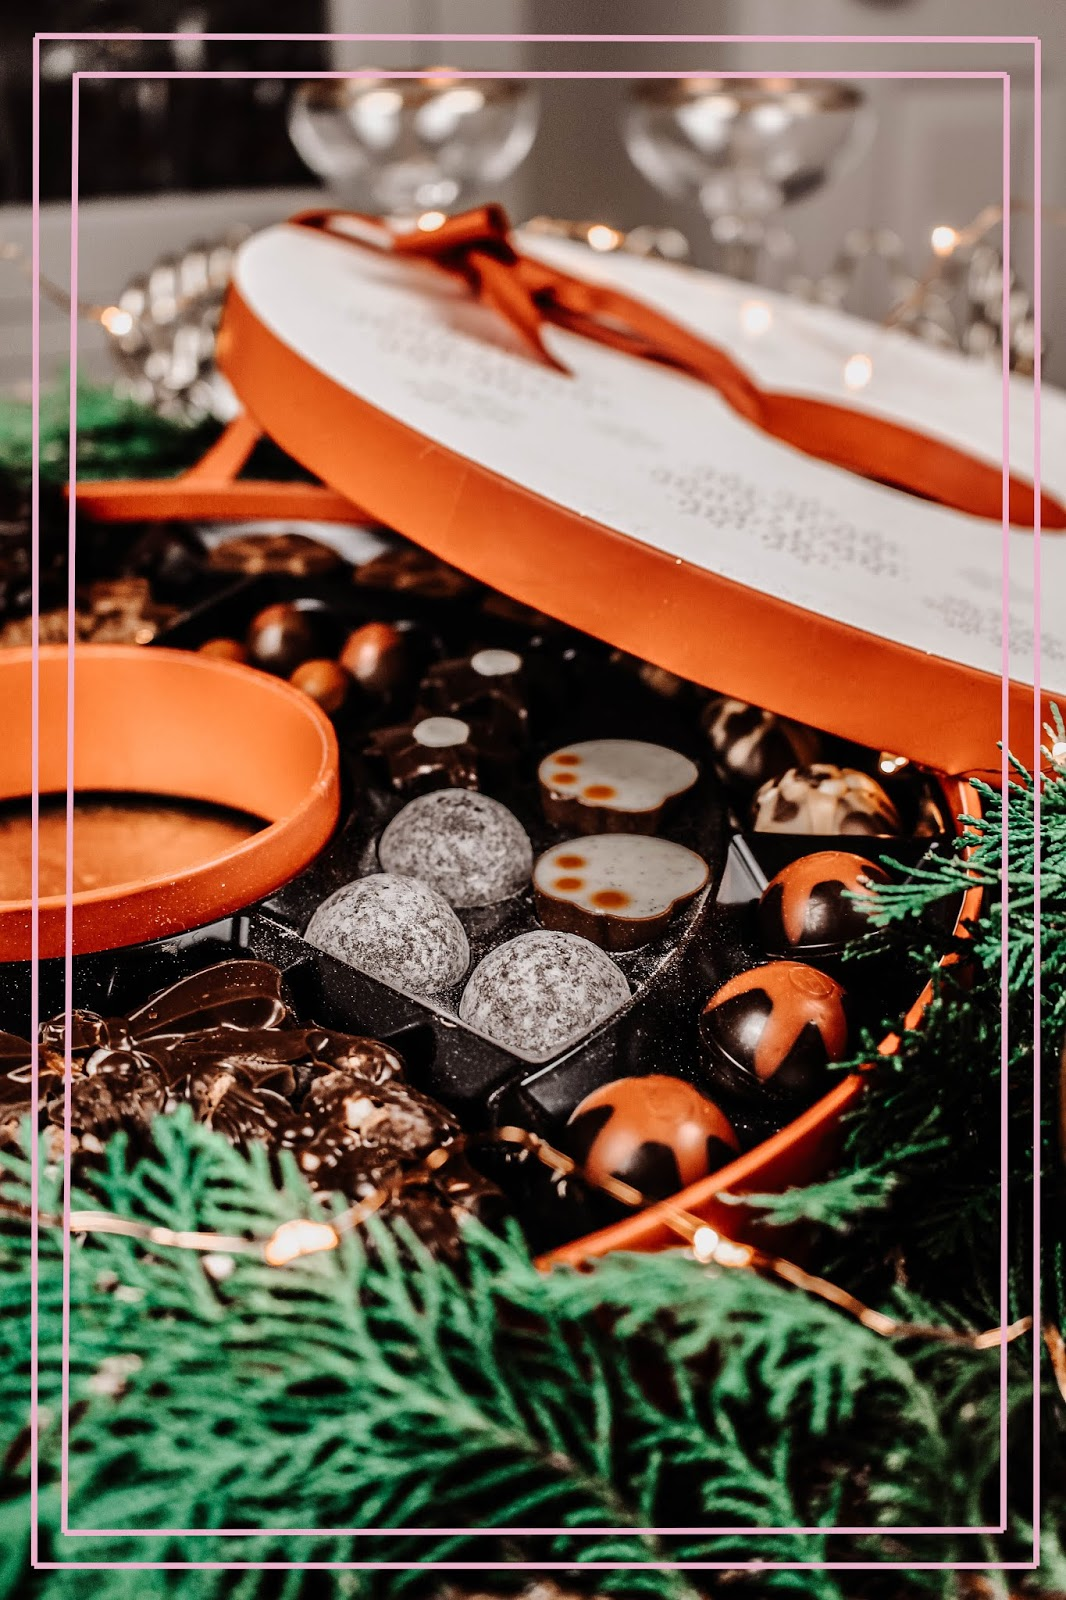 Hotel Chocolat Christmas Wreath 2018 Giveaway